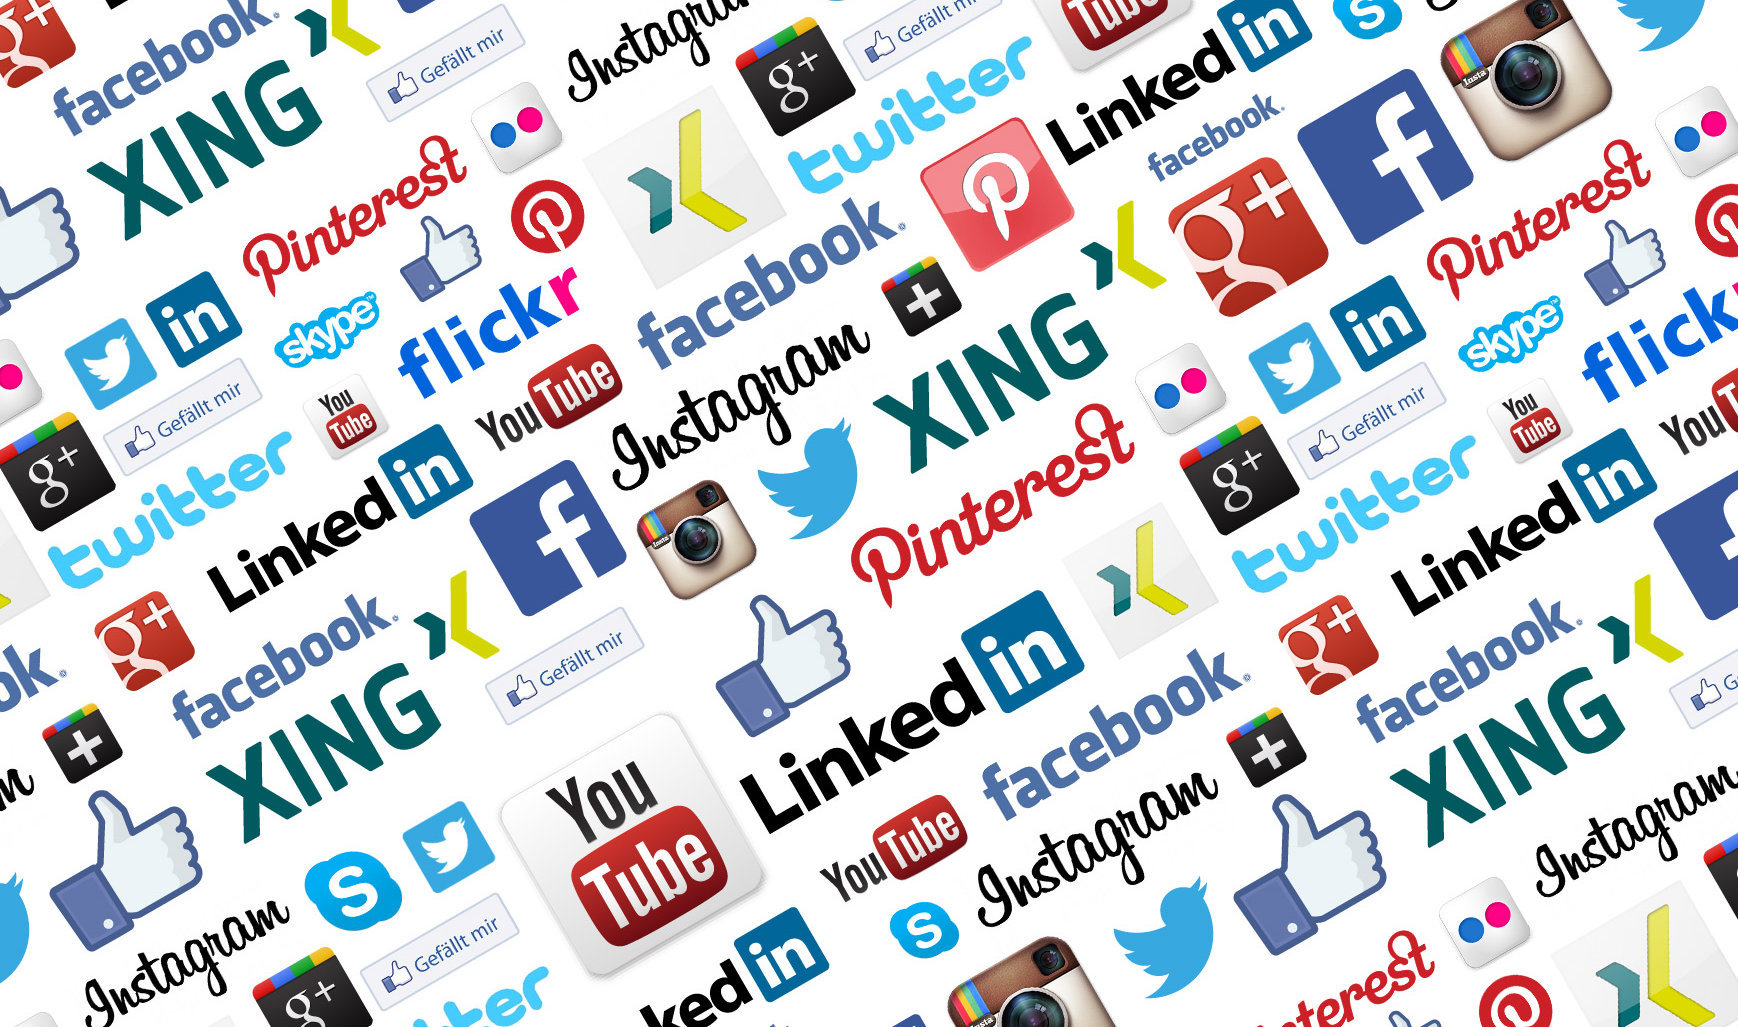 Using Social Networking to Market Your Small BusinessUsing Social Networking to Market Your Small Business